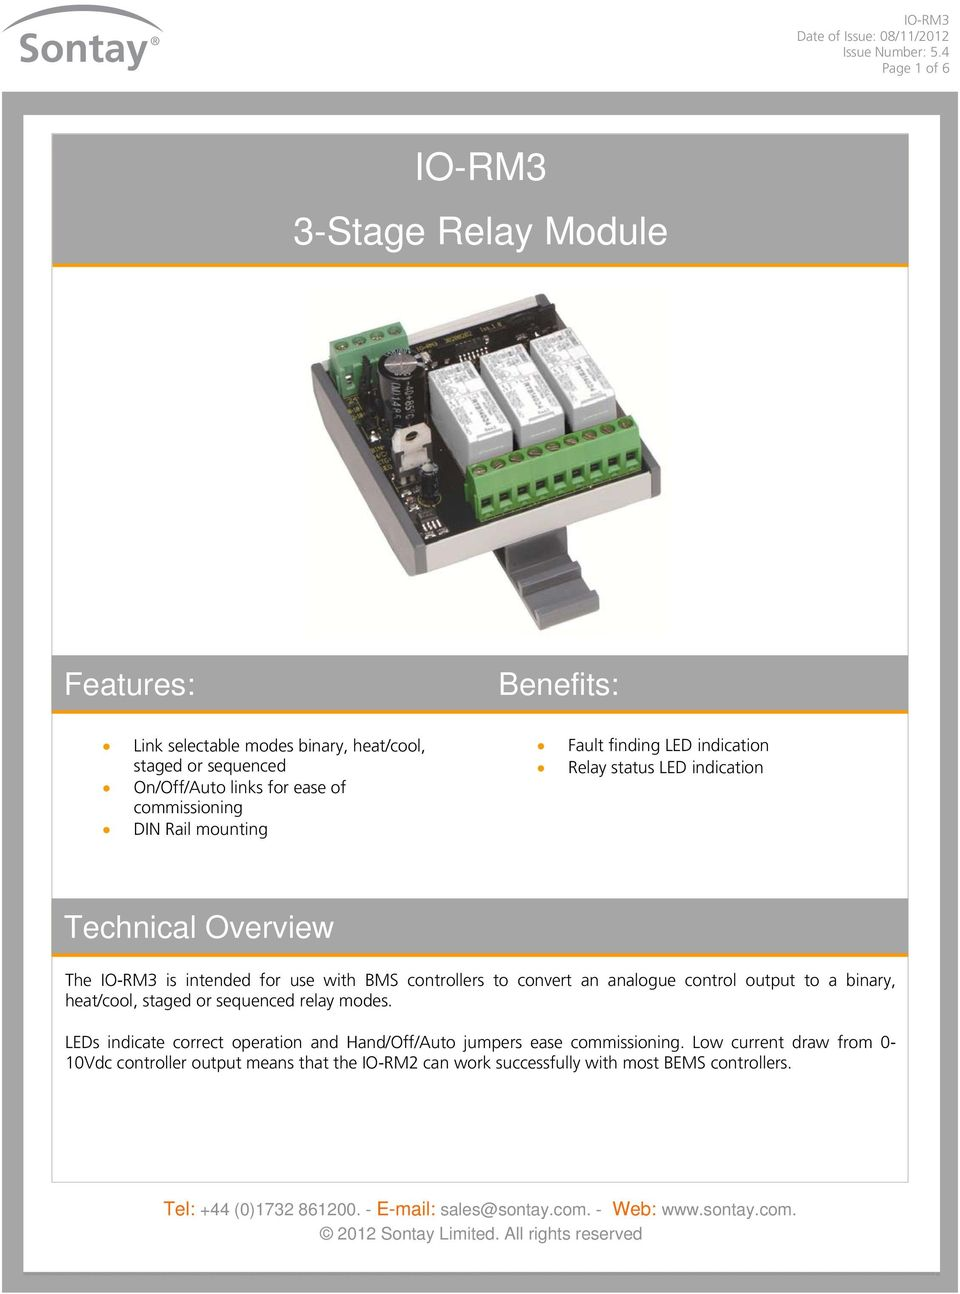 controllers to convert an analogue control output to a binary, heat/cool, staged or sequenced relay modes.